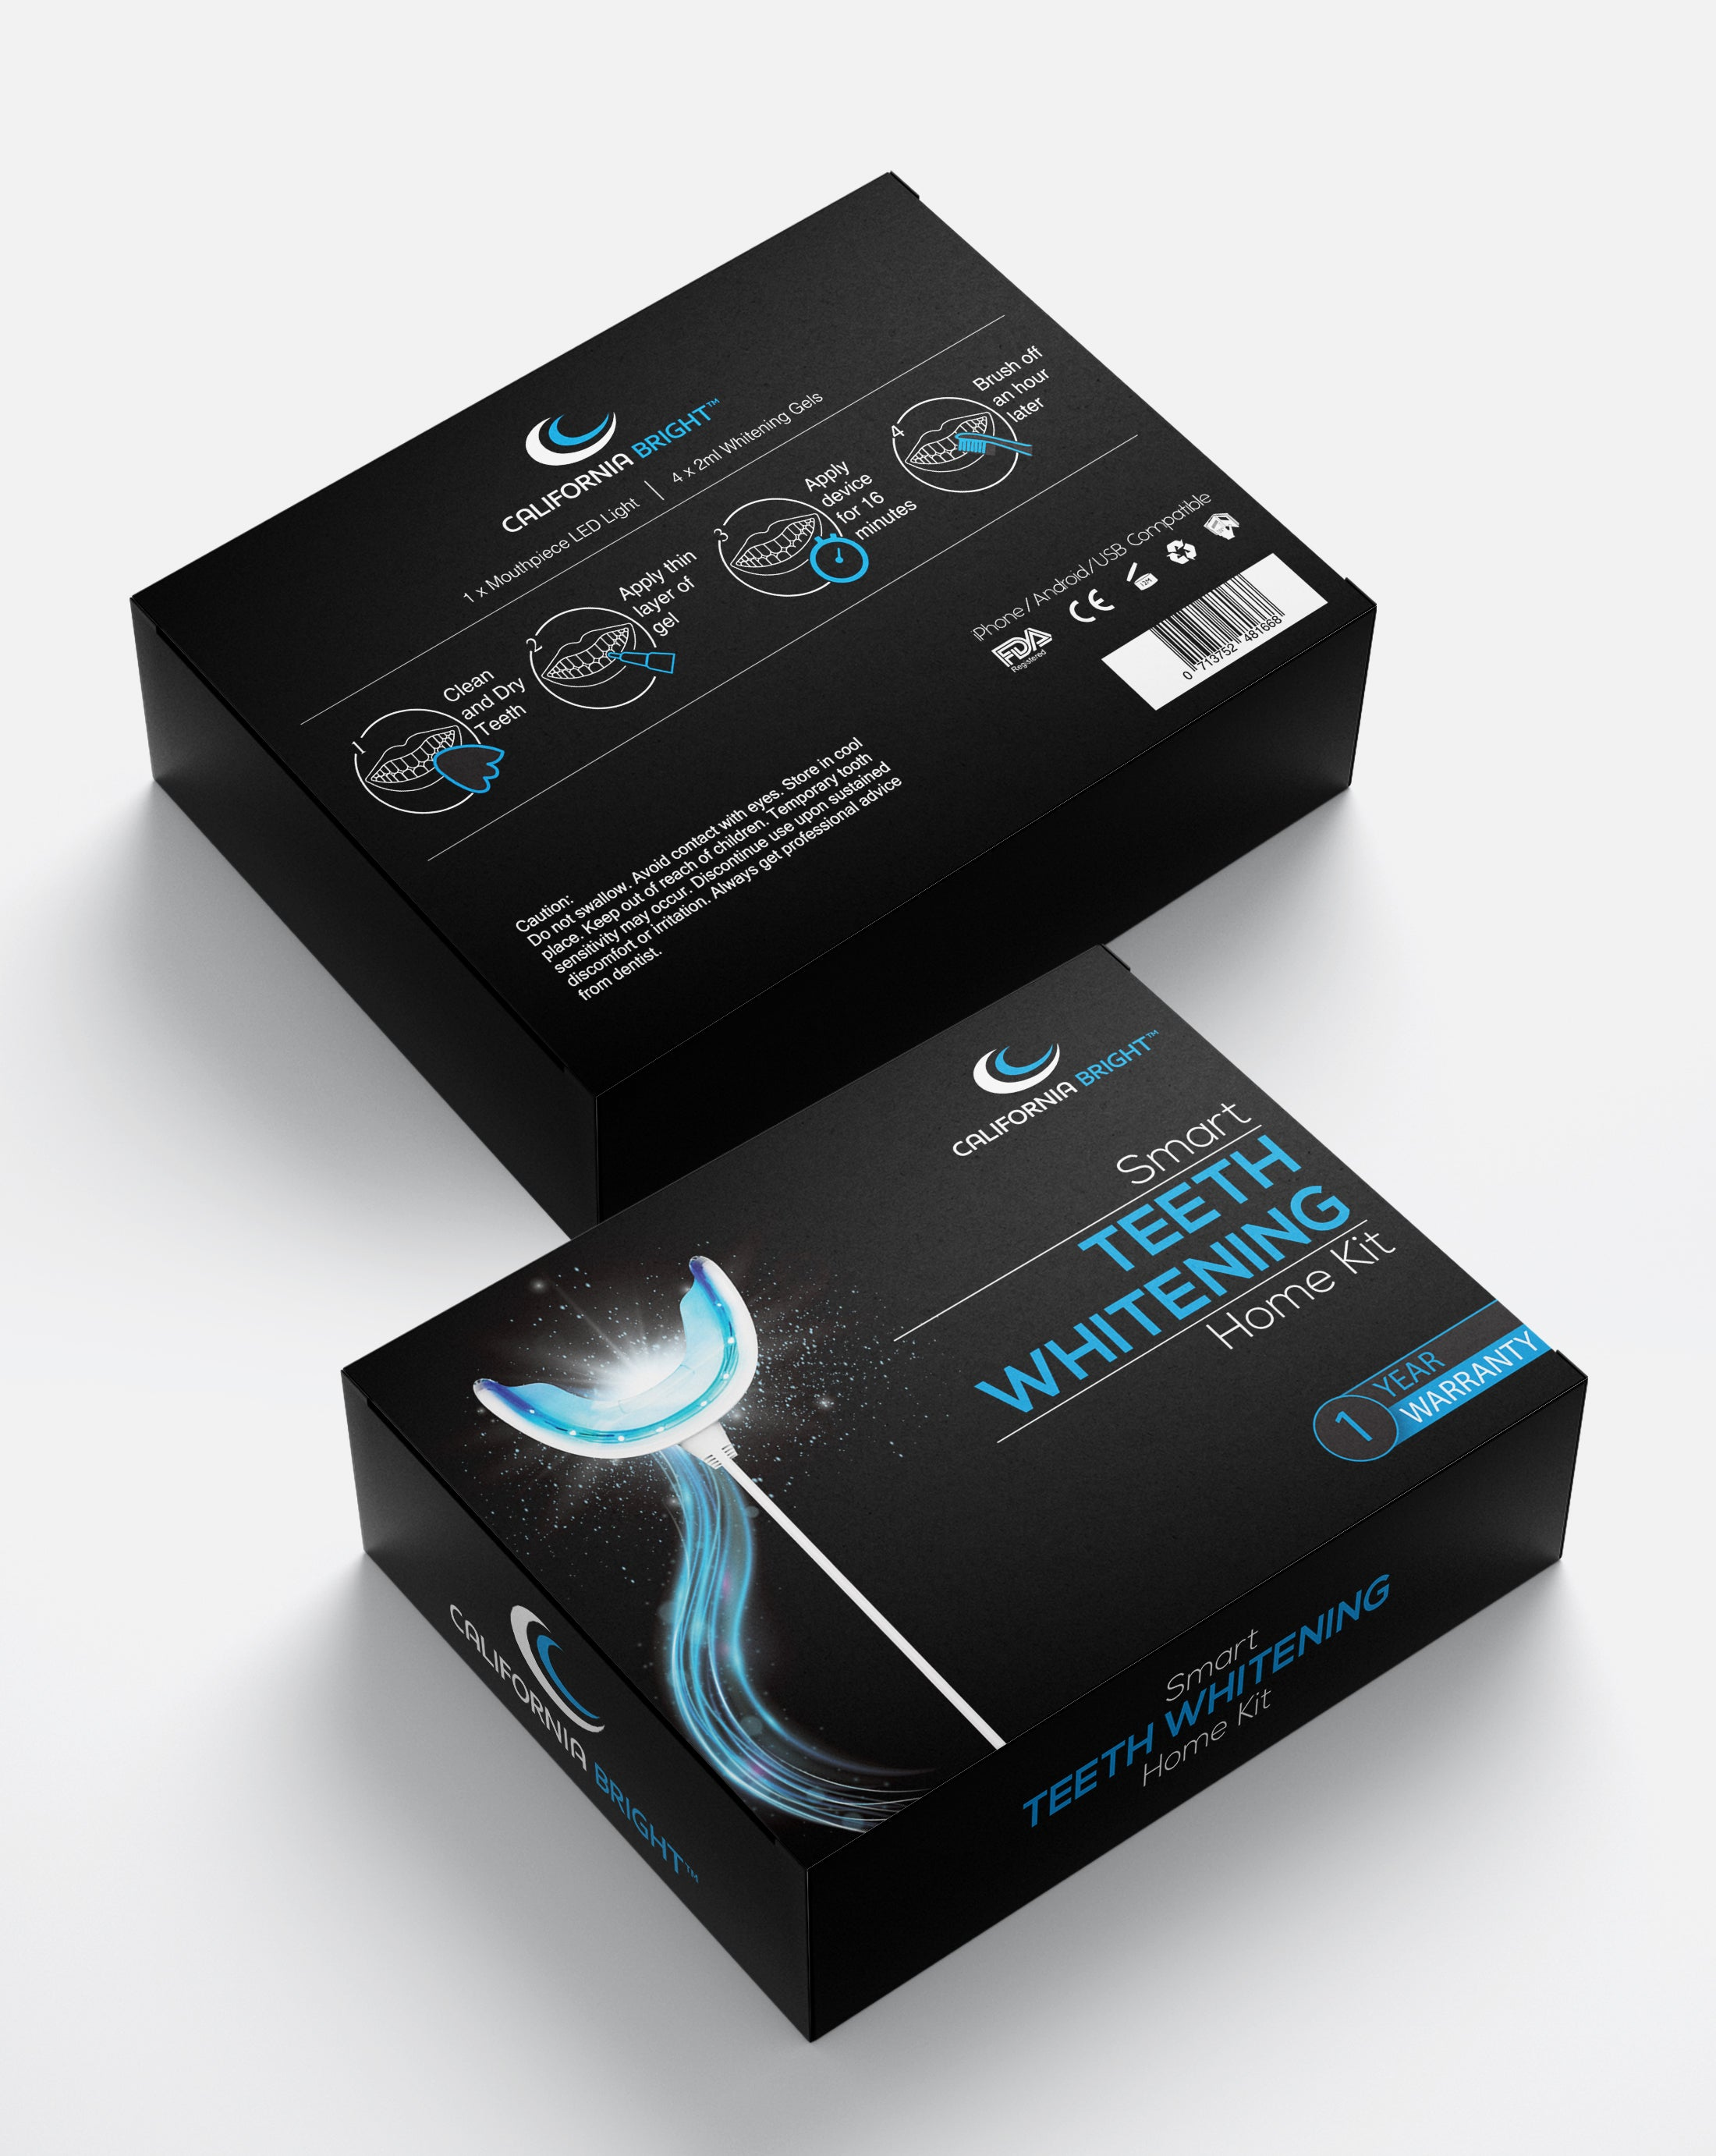 California Bright Teeth Whitening Kit